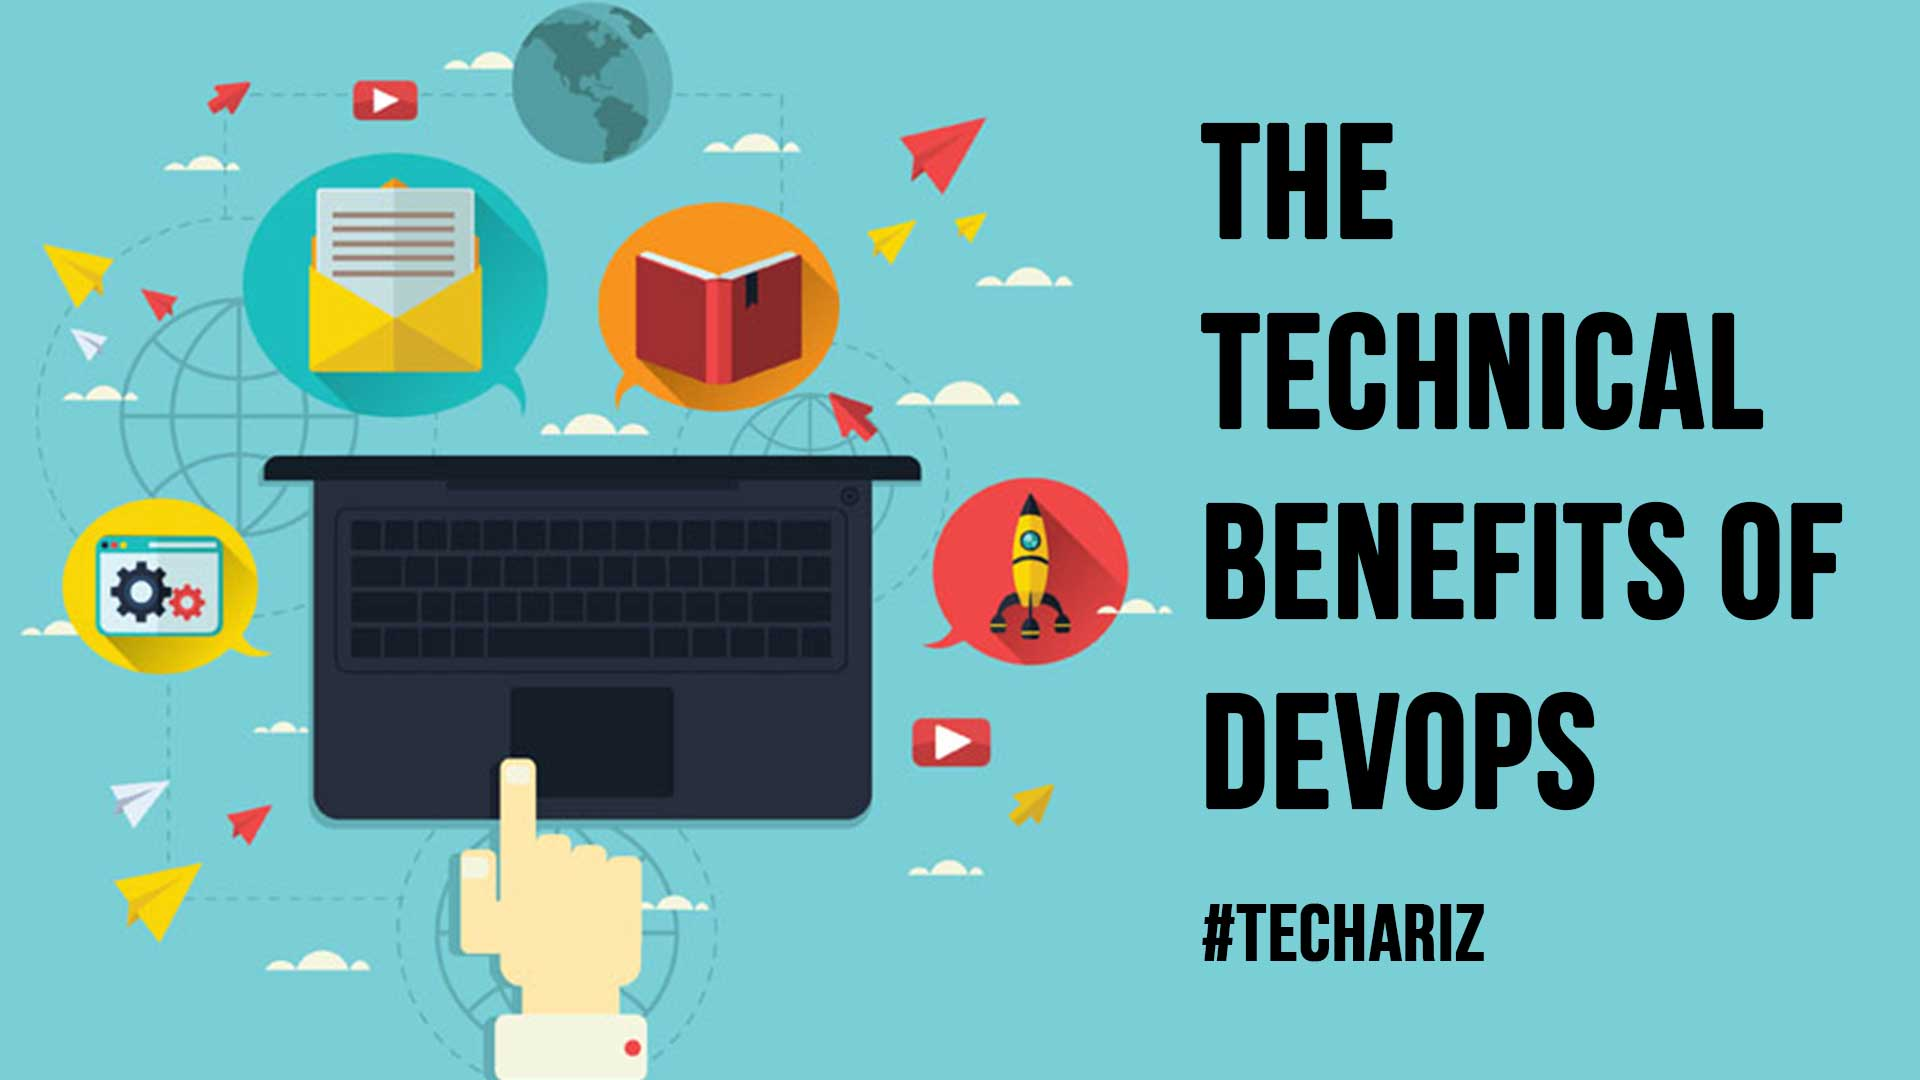 The Technical Benefits of DevOps